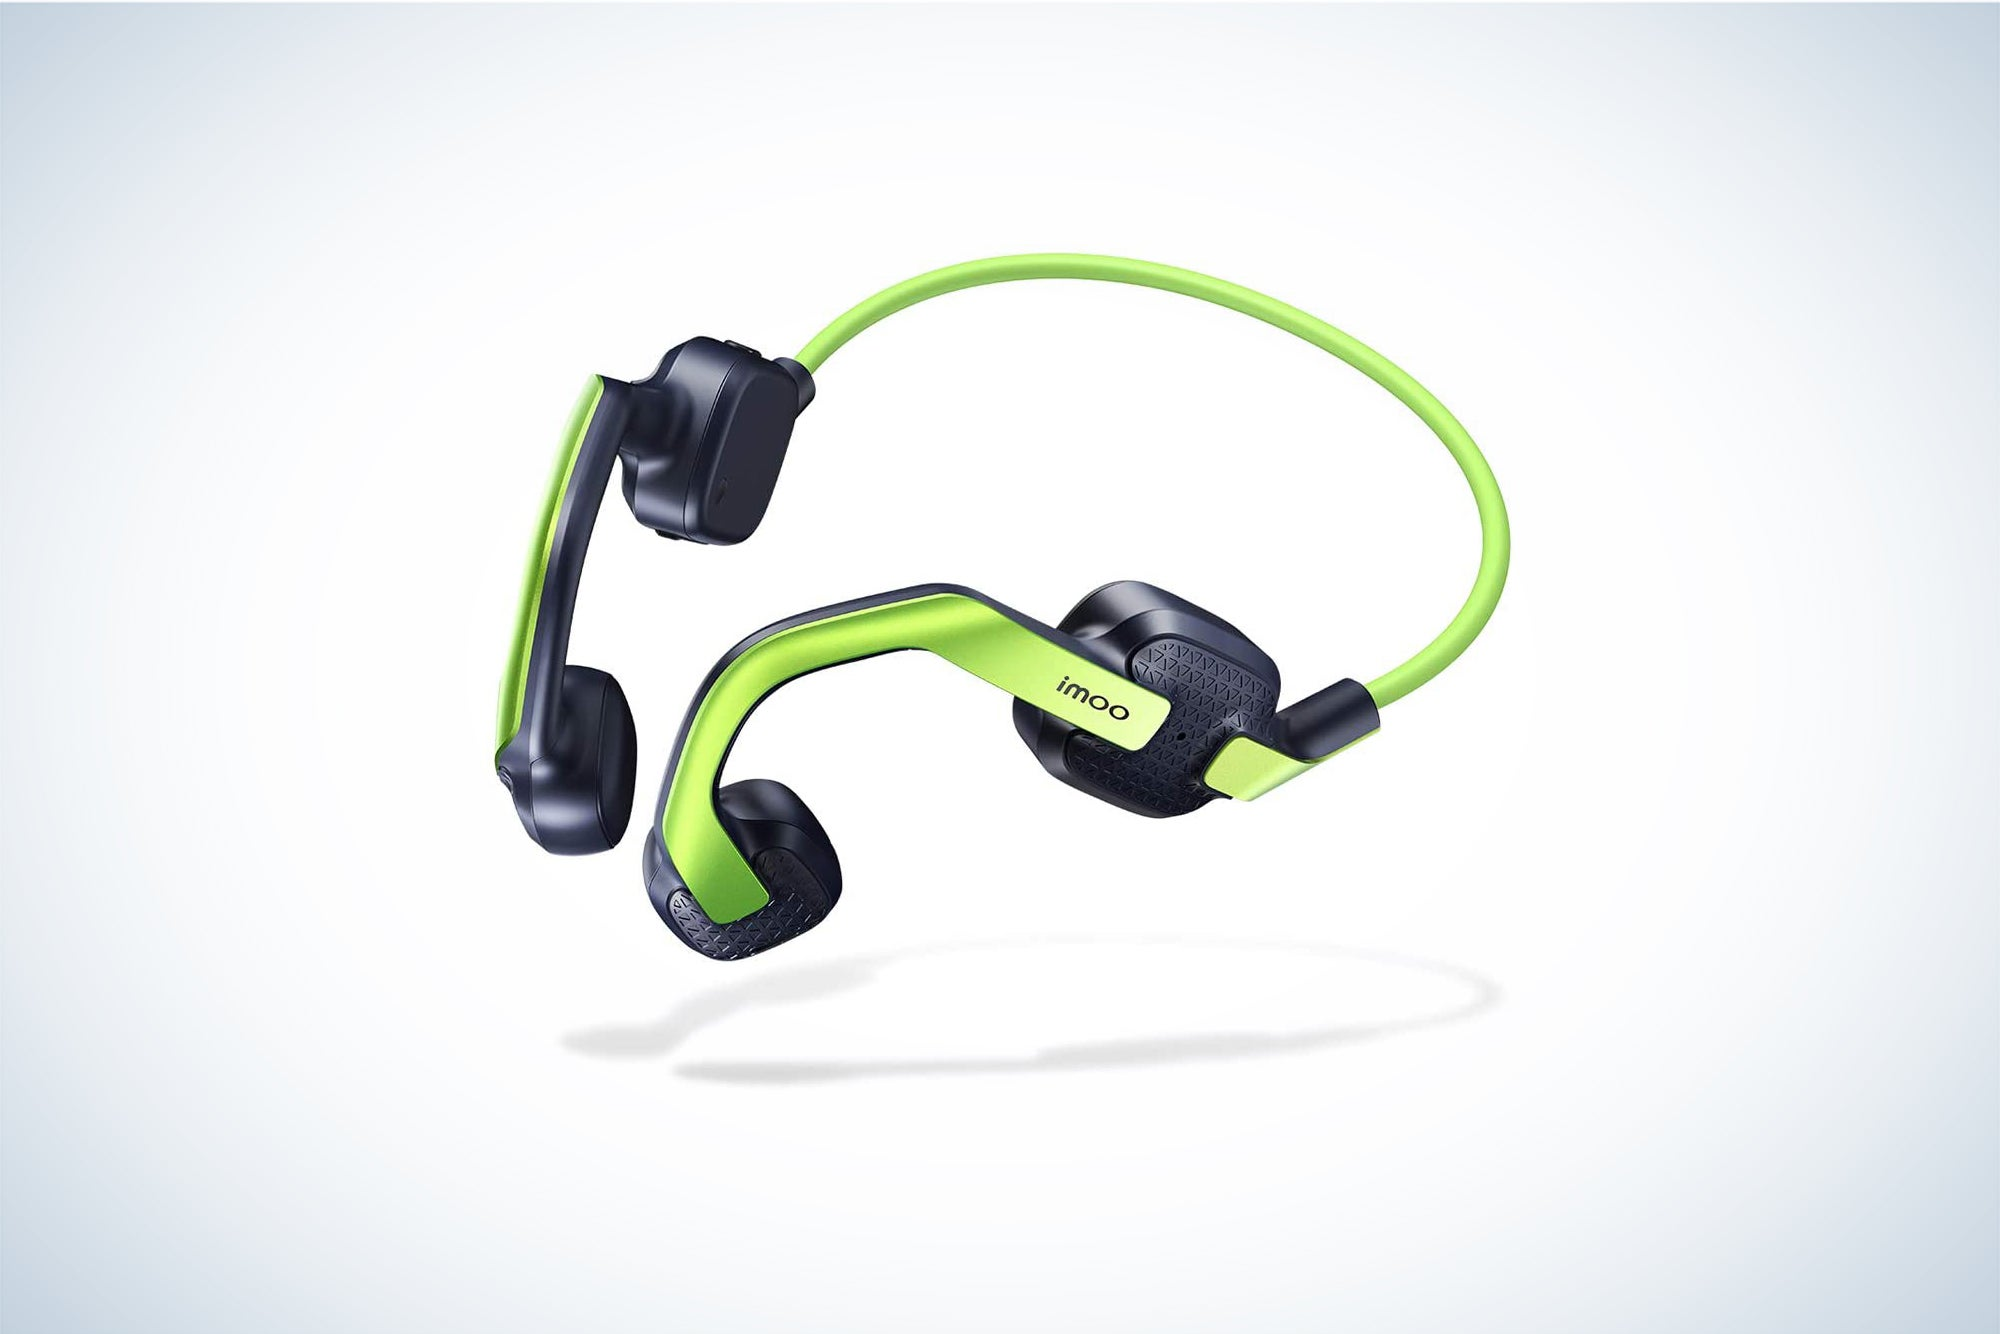 imoo Kids is our pick for the best kids' headphones.